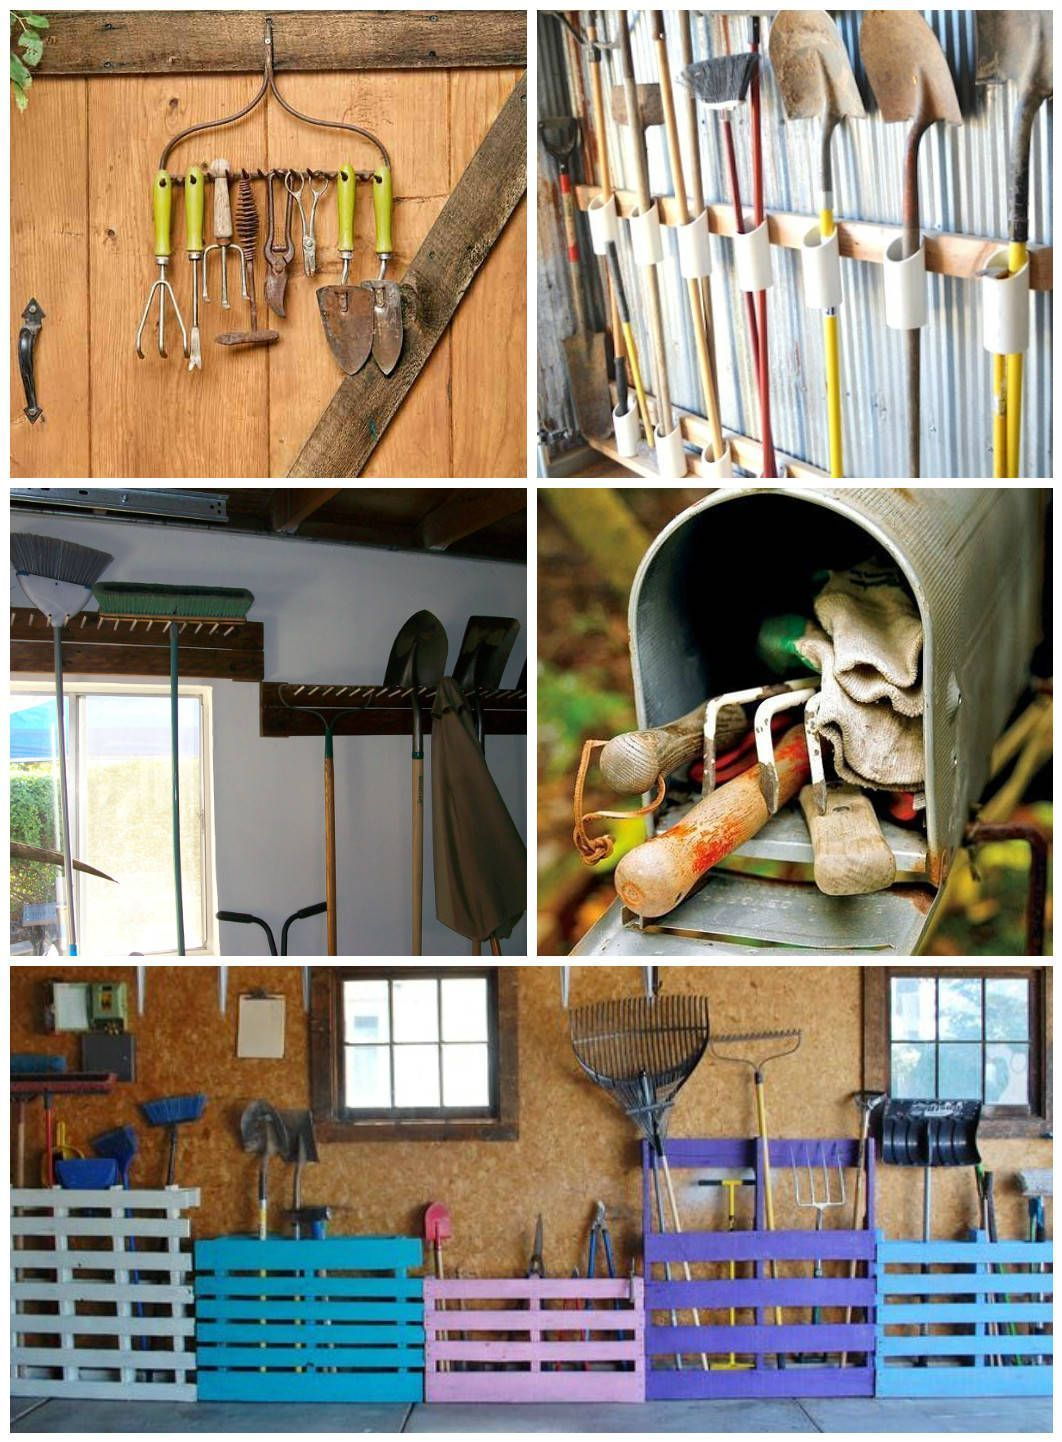 easy garden tool rack you can make from recycled materials